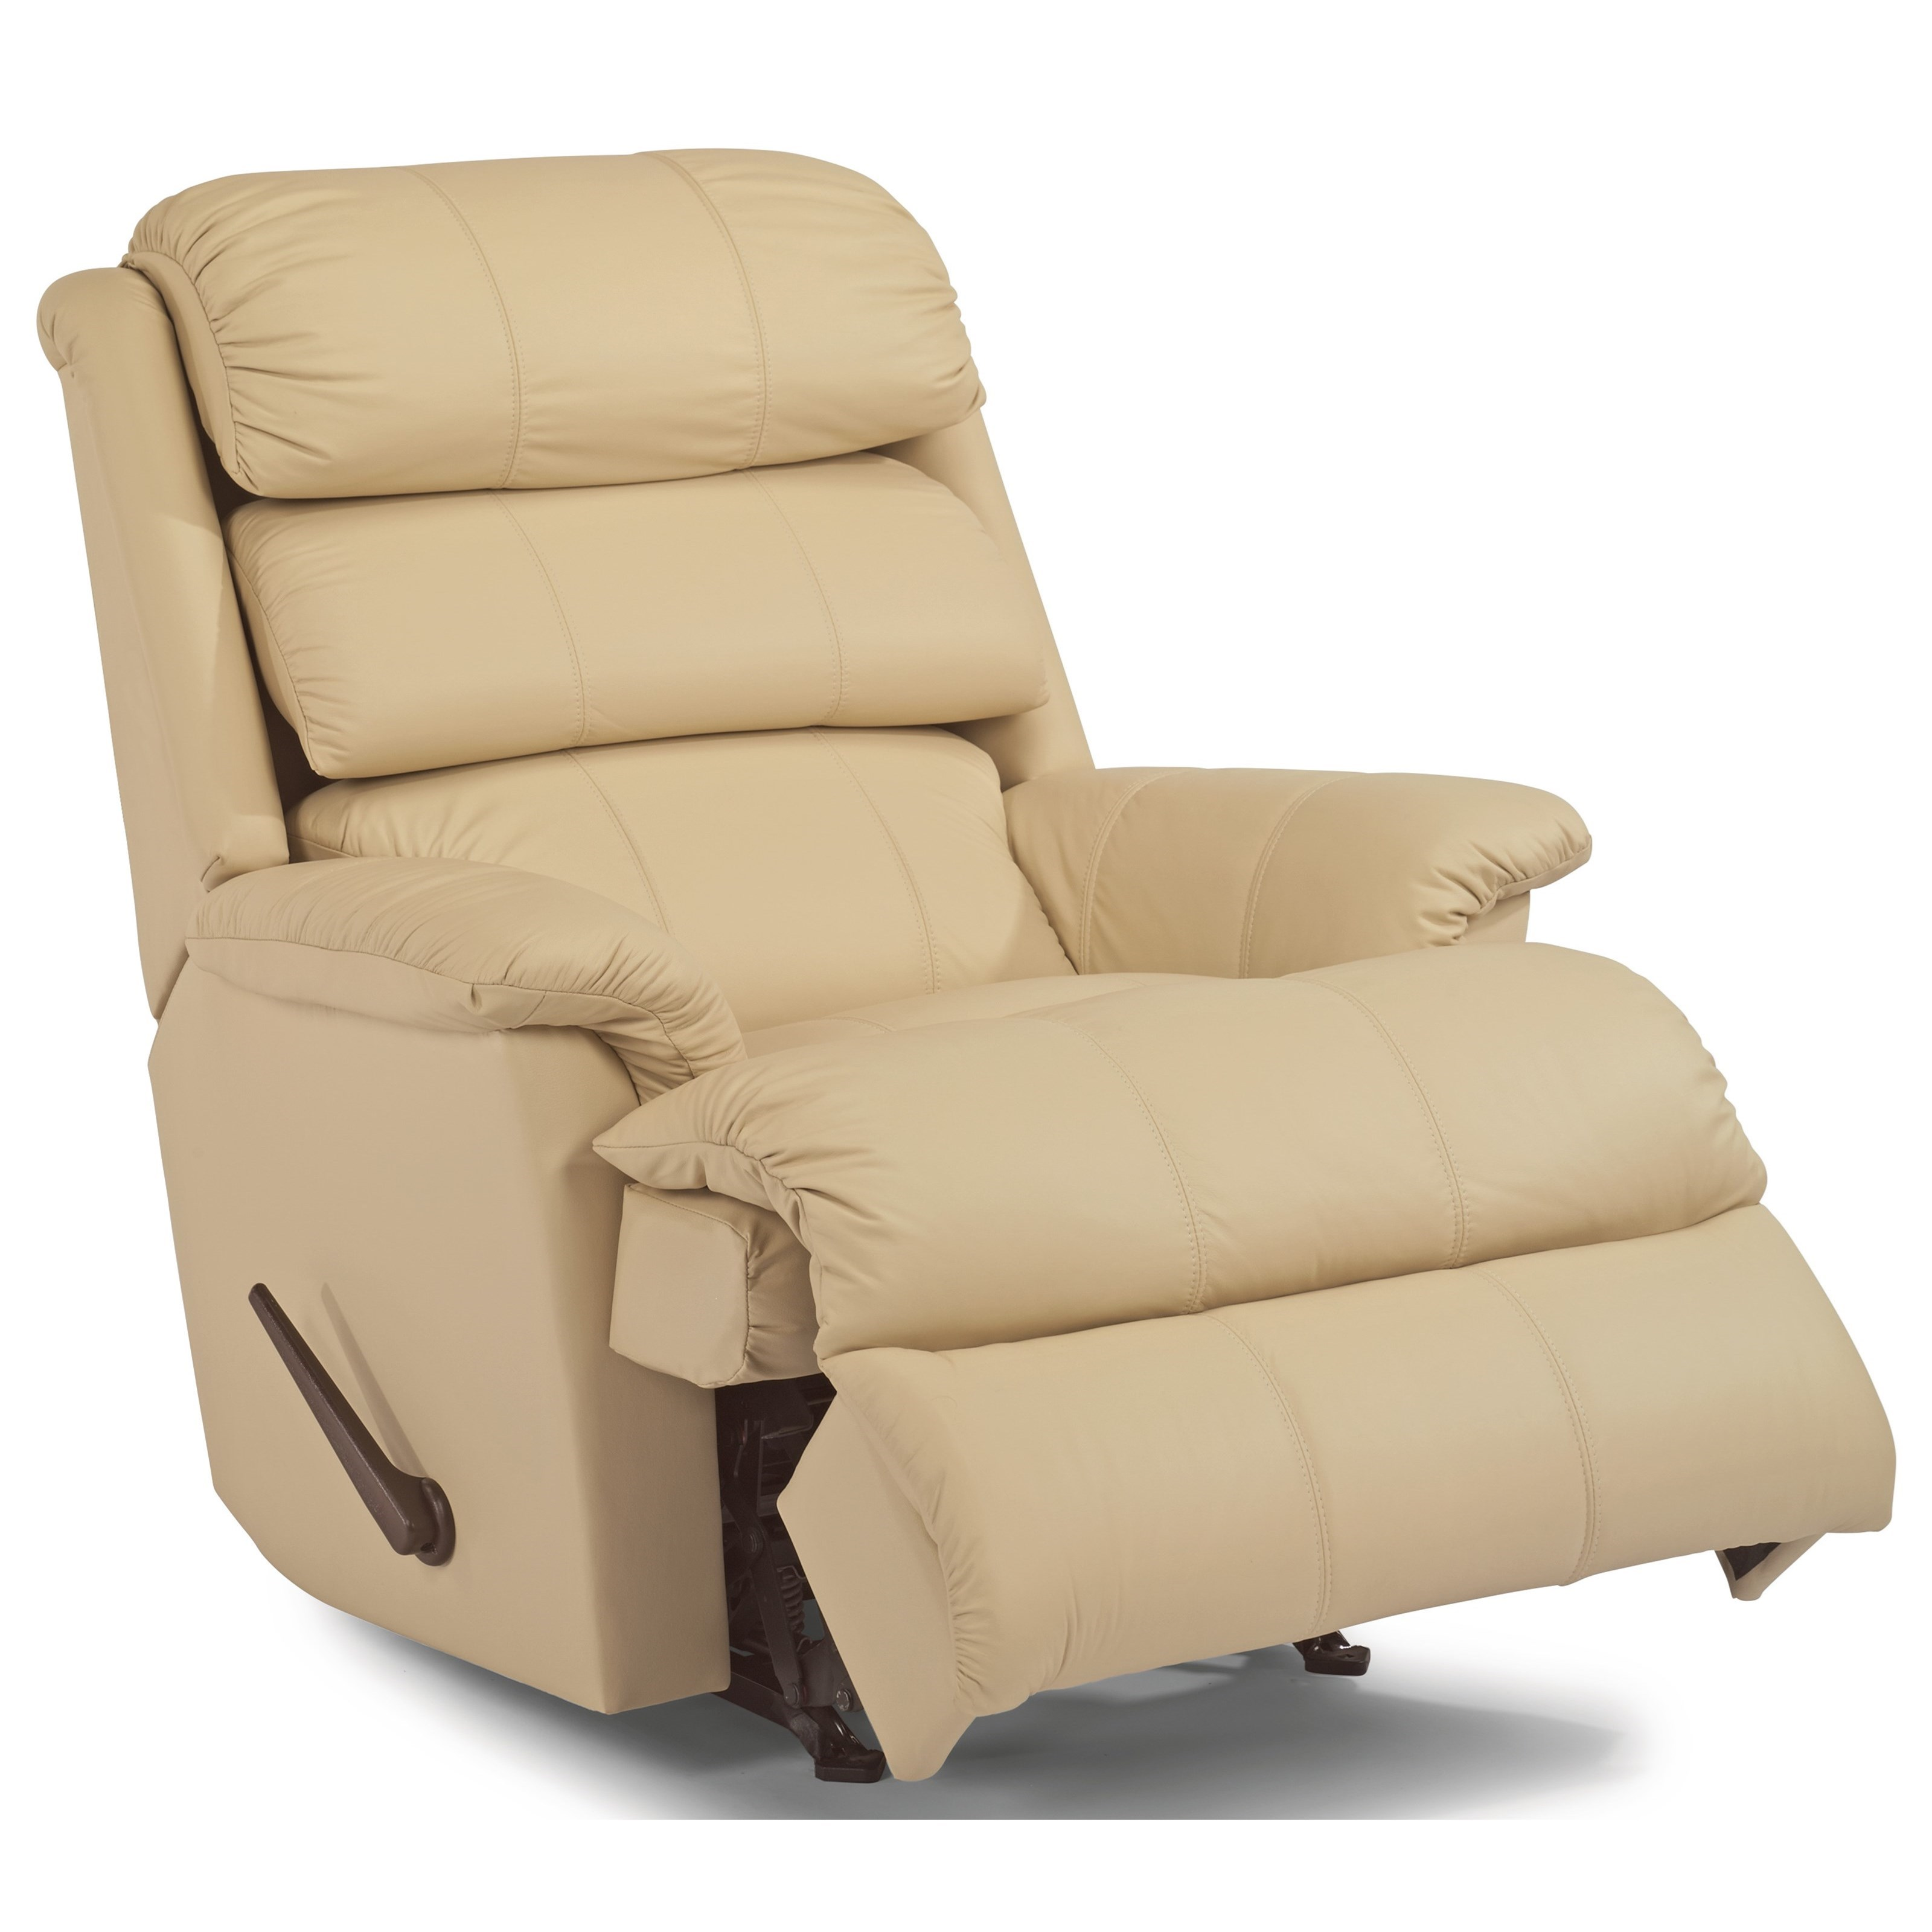 Accents Rocking Recliner by Flexsteel at Michael Alan Furniture & Design